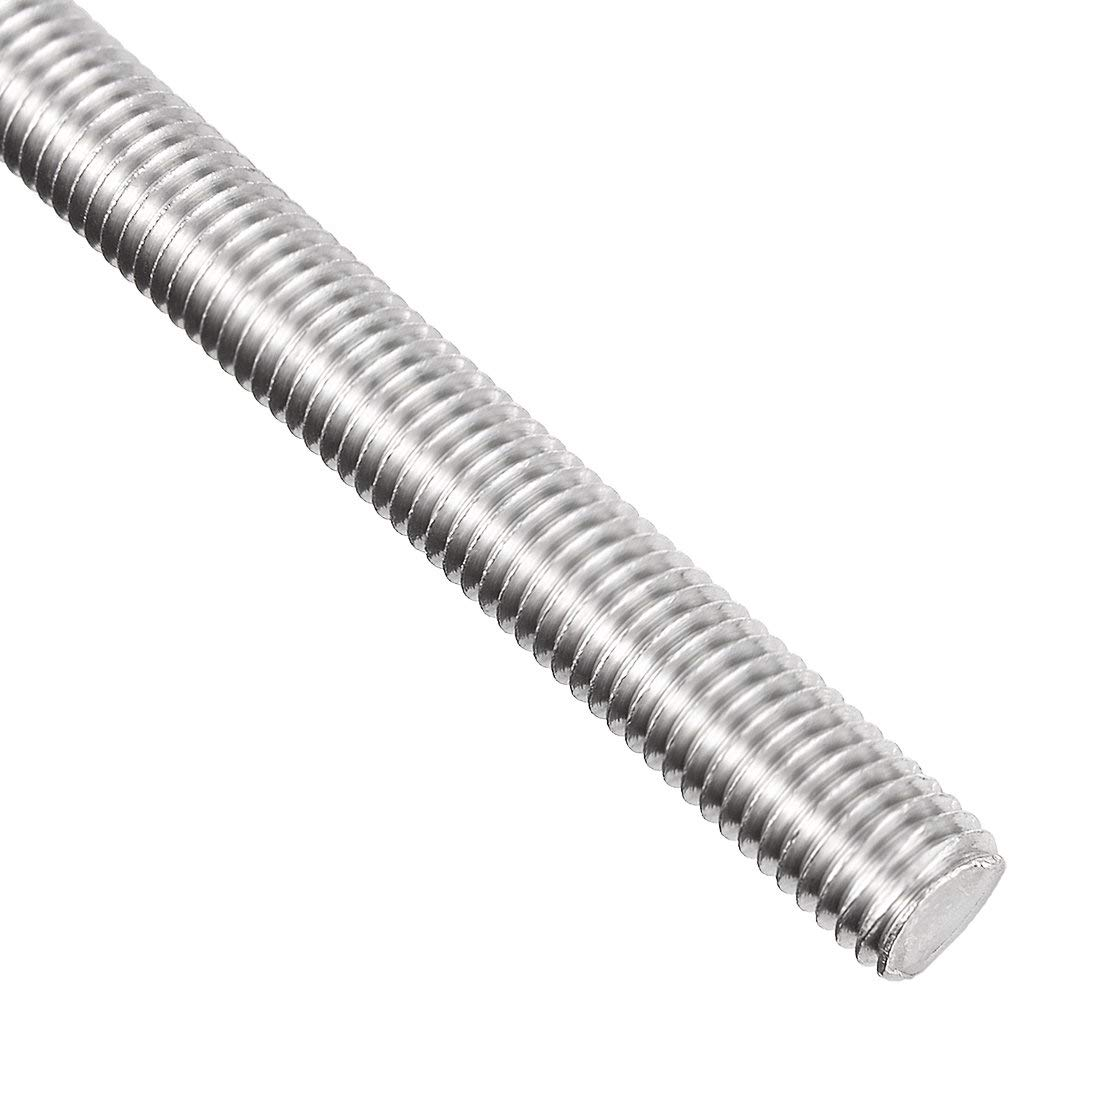 ZCHXD M10 Fully Threaded Rod, 304 Stainless Steel, 250mm ...